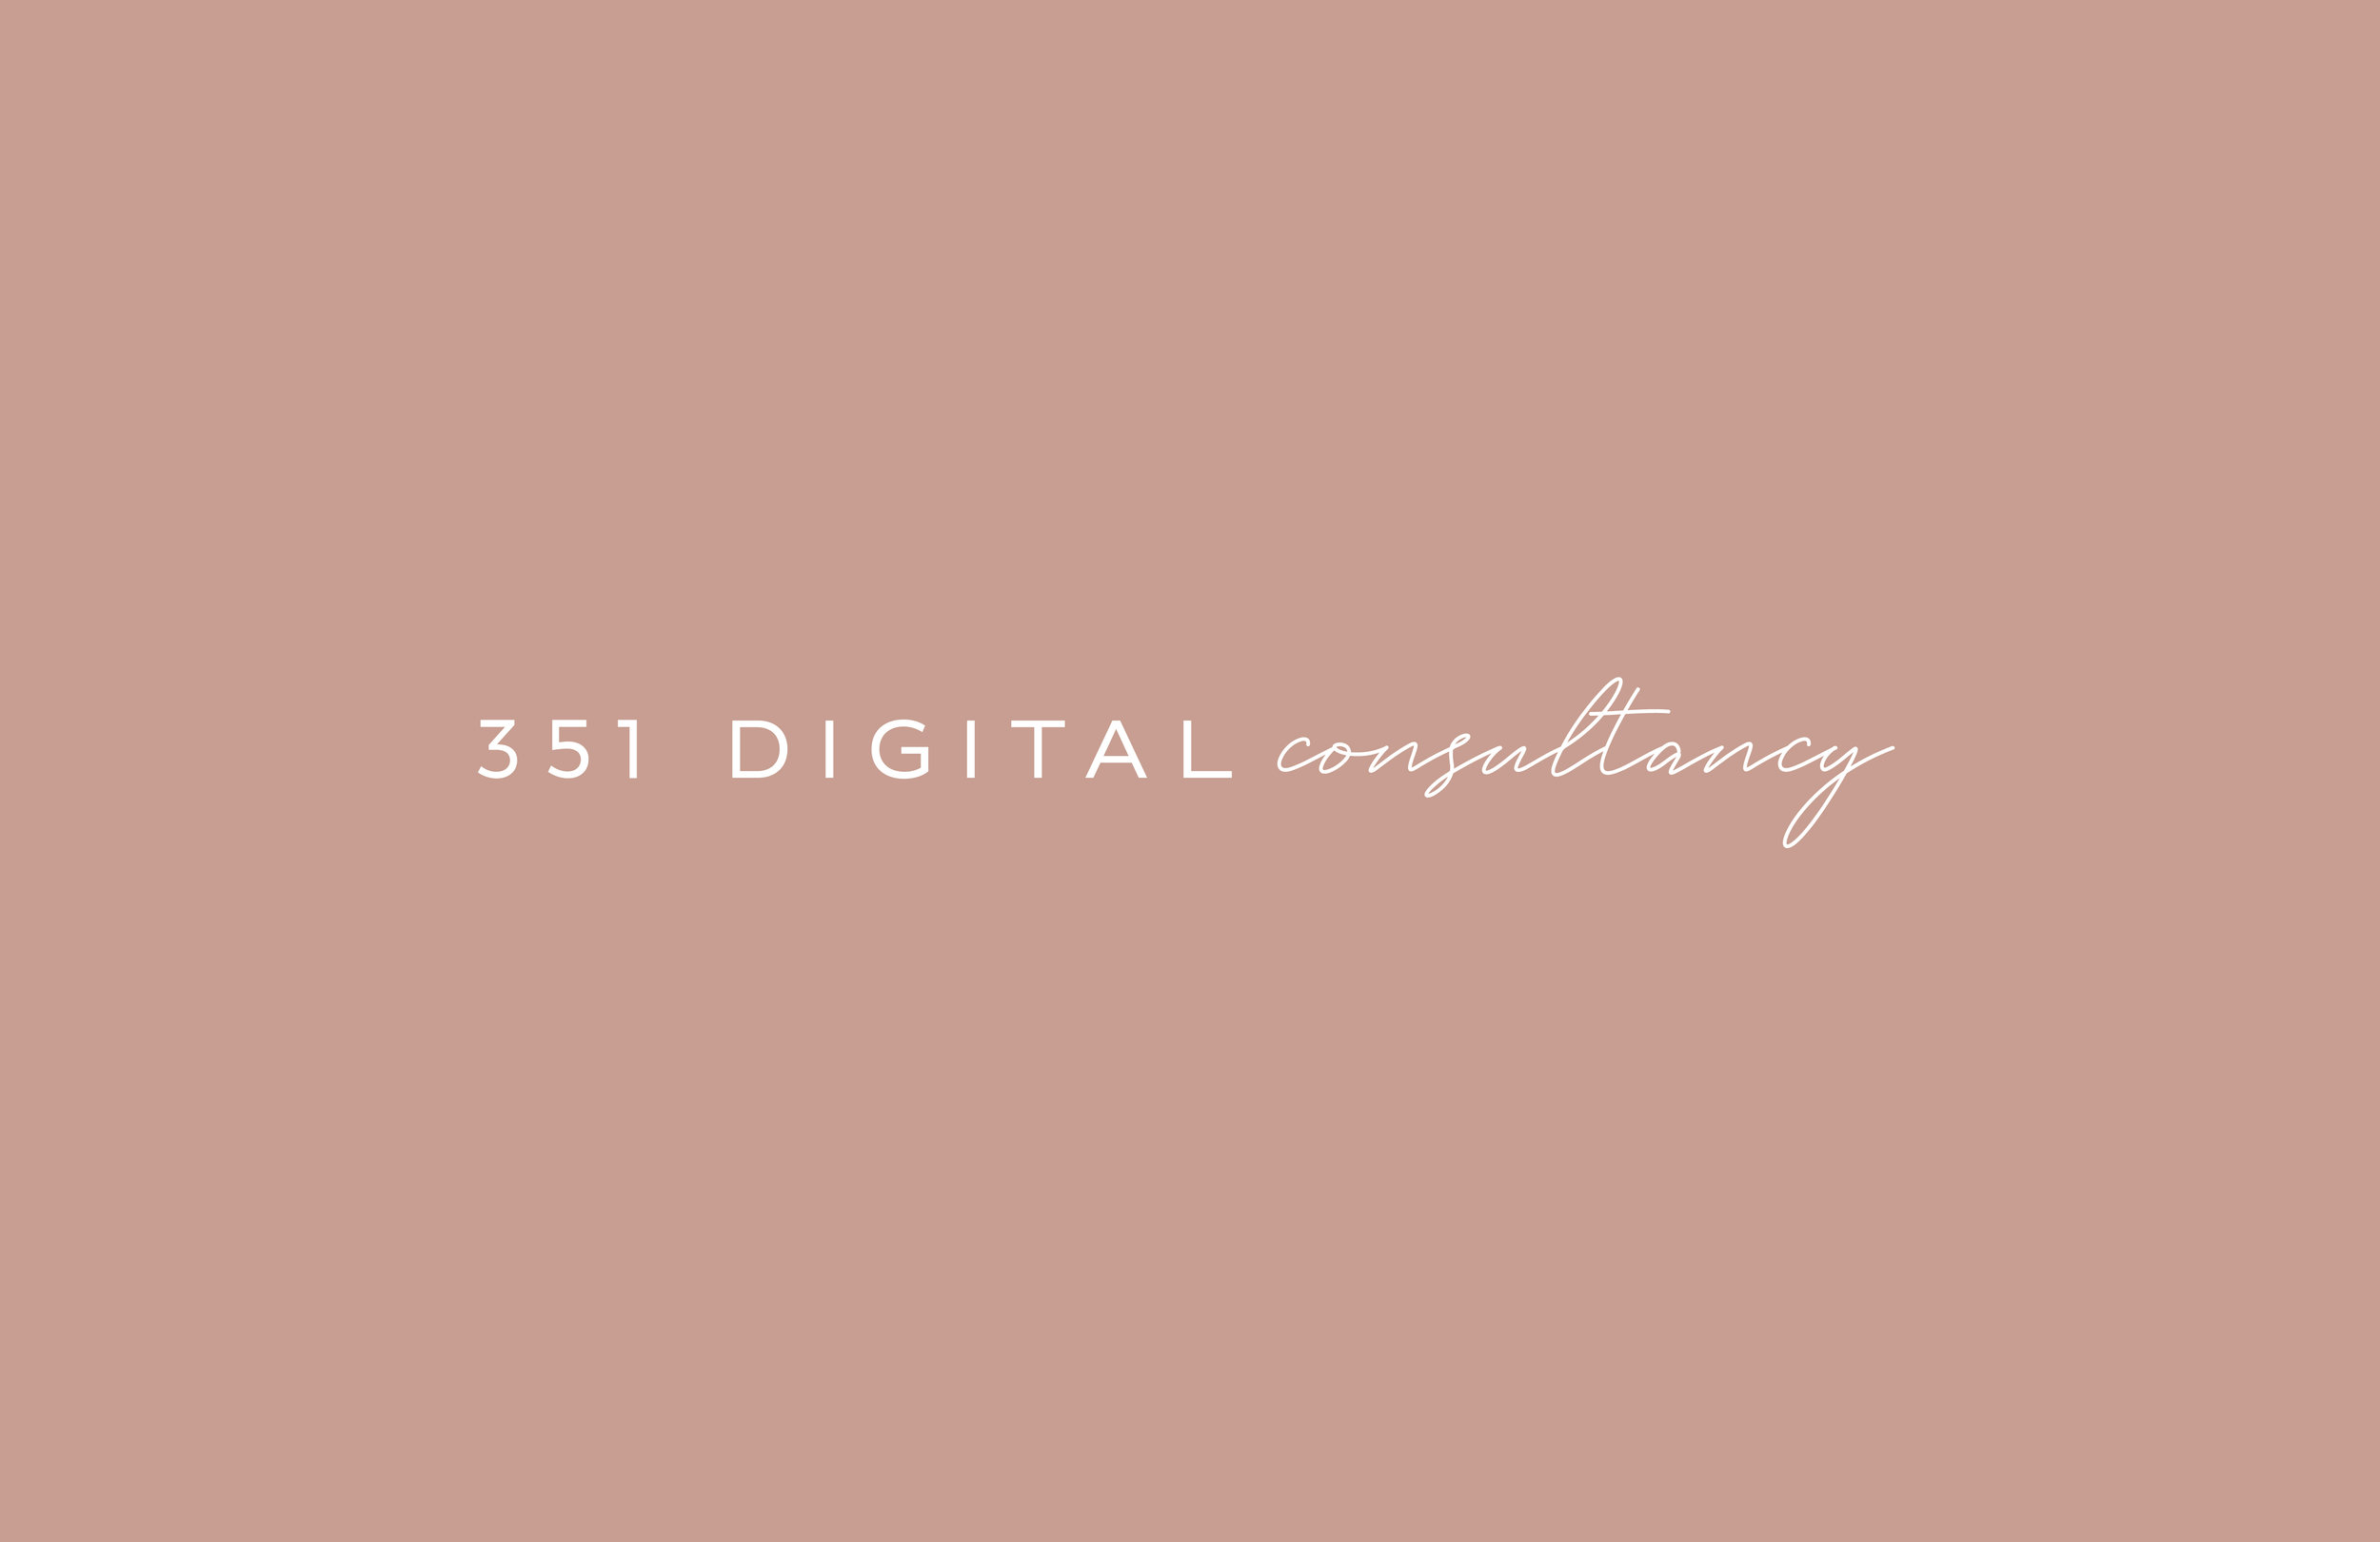 351 Digital Consultancy logo - by January Made Design